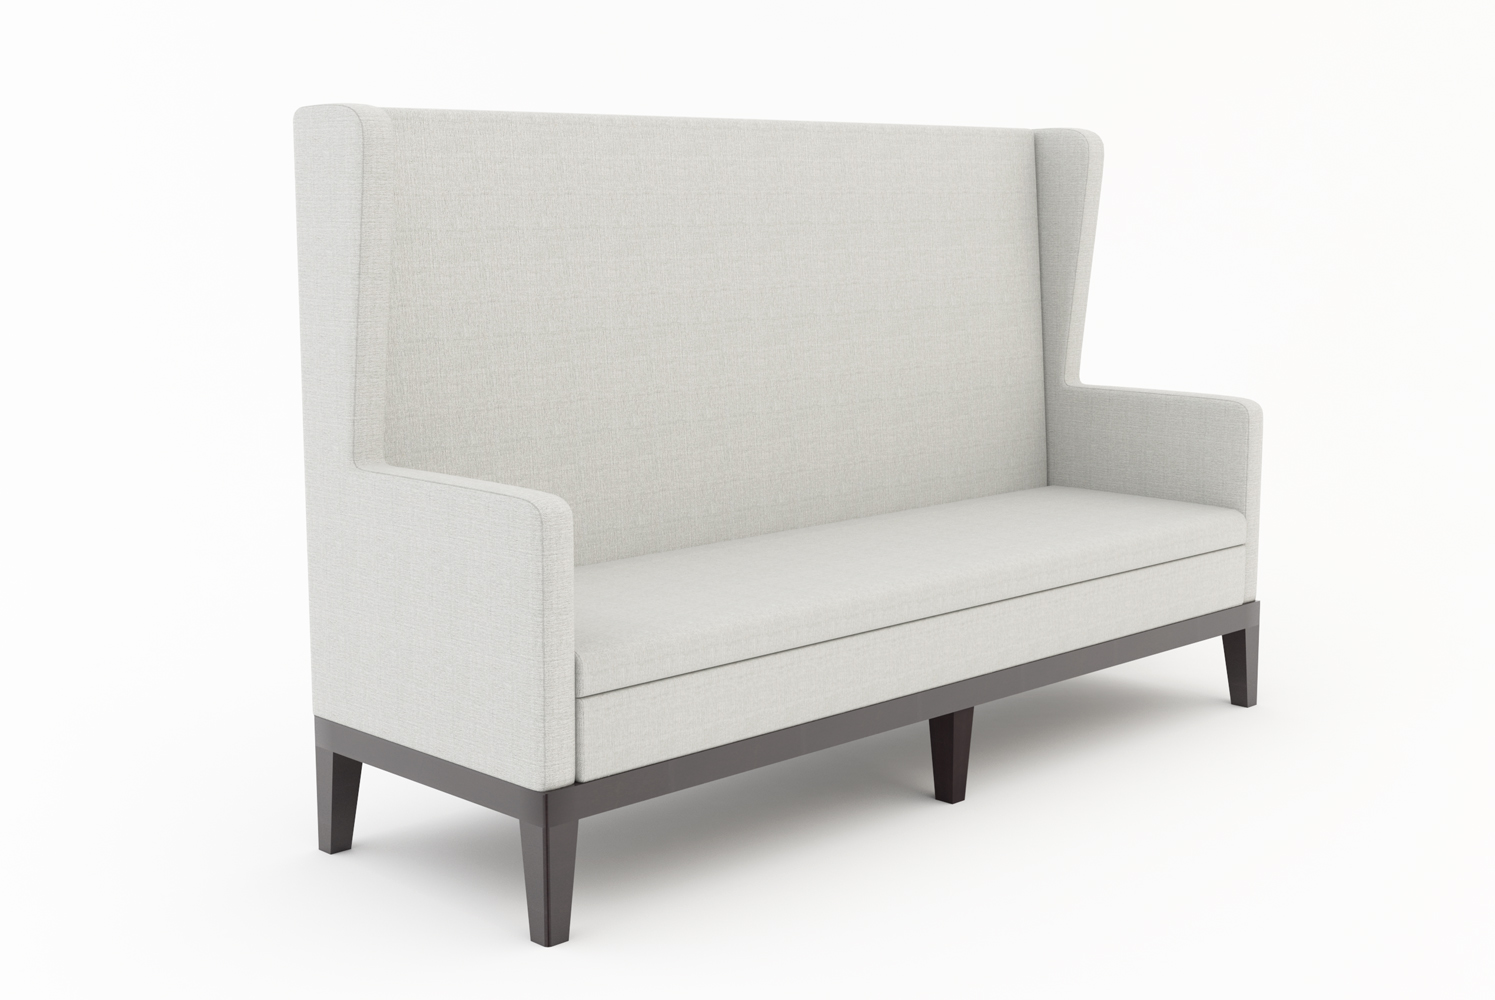 Symphony, Lounge, 3-Seat, High Back